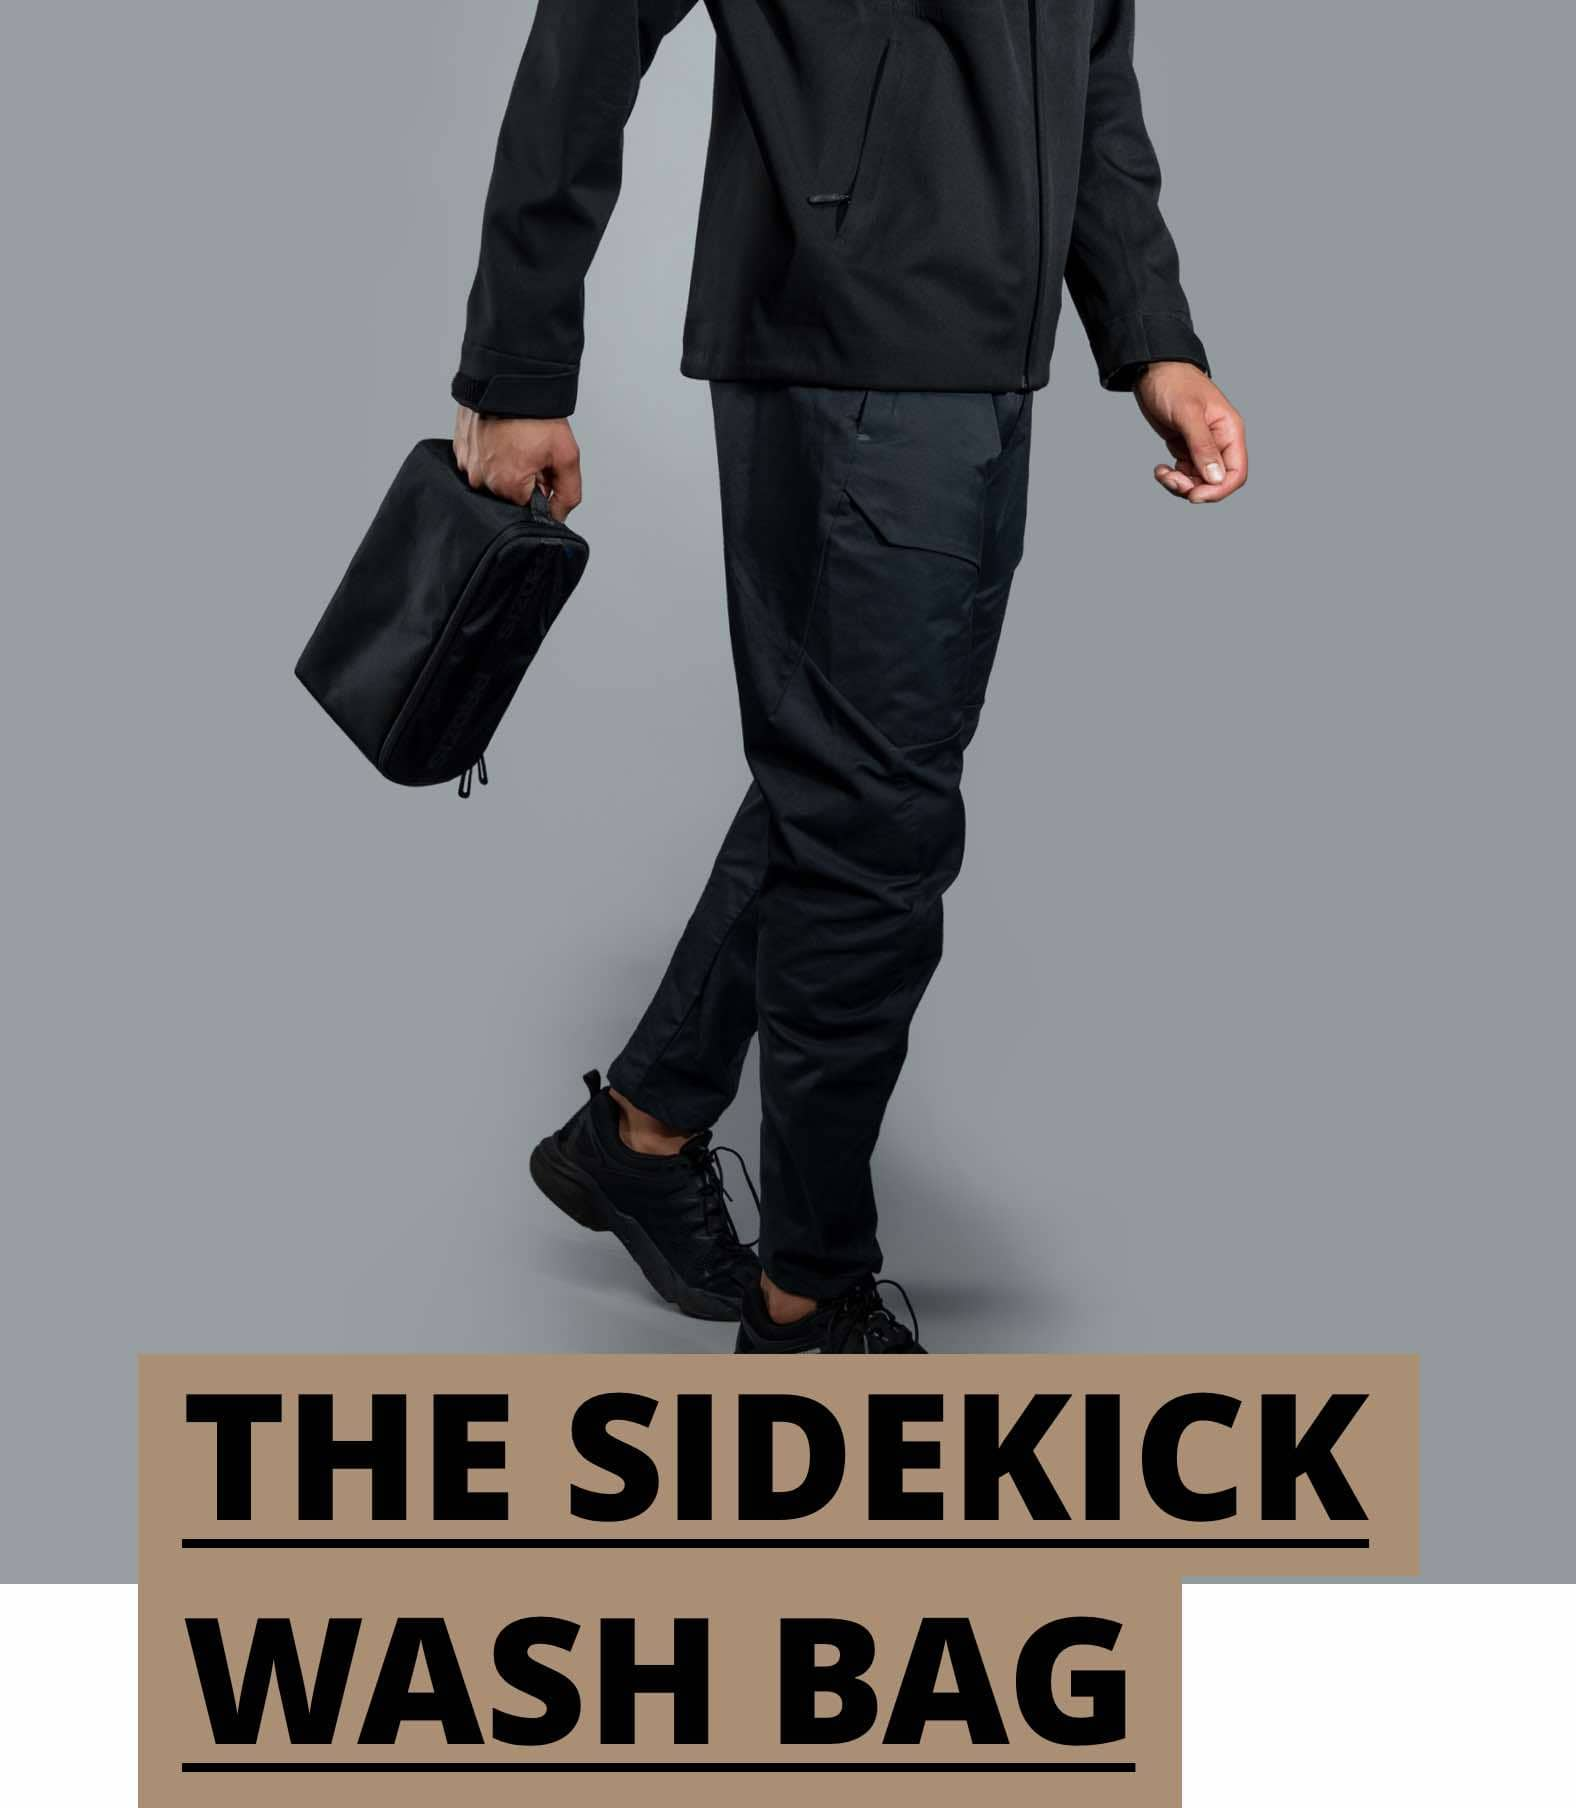 The Sidekick Wash Bag